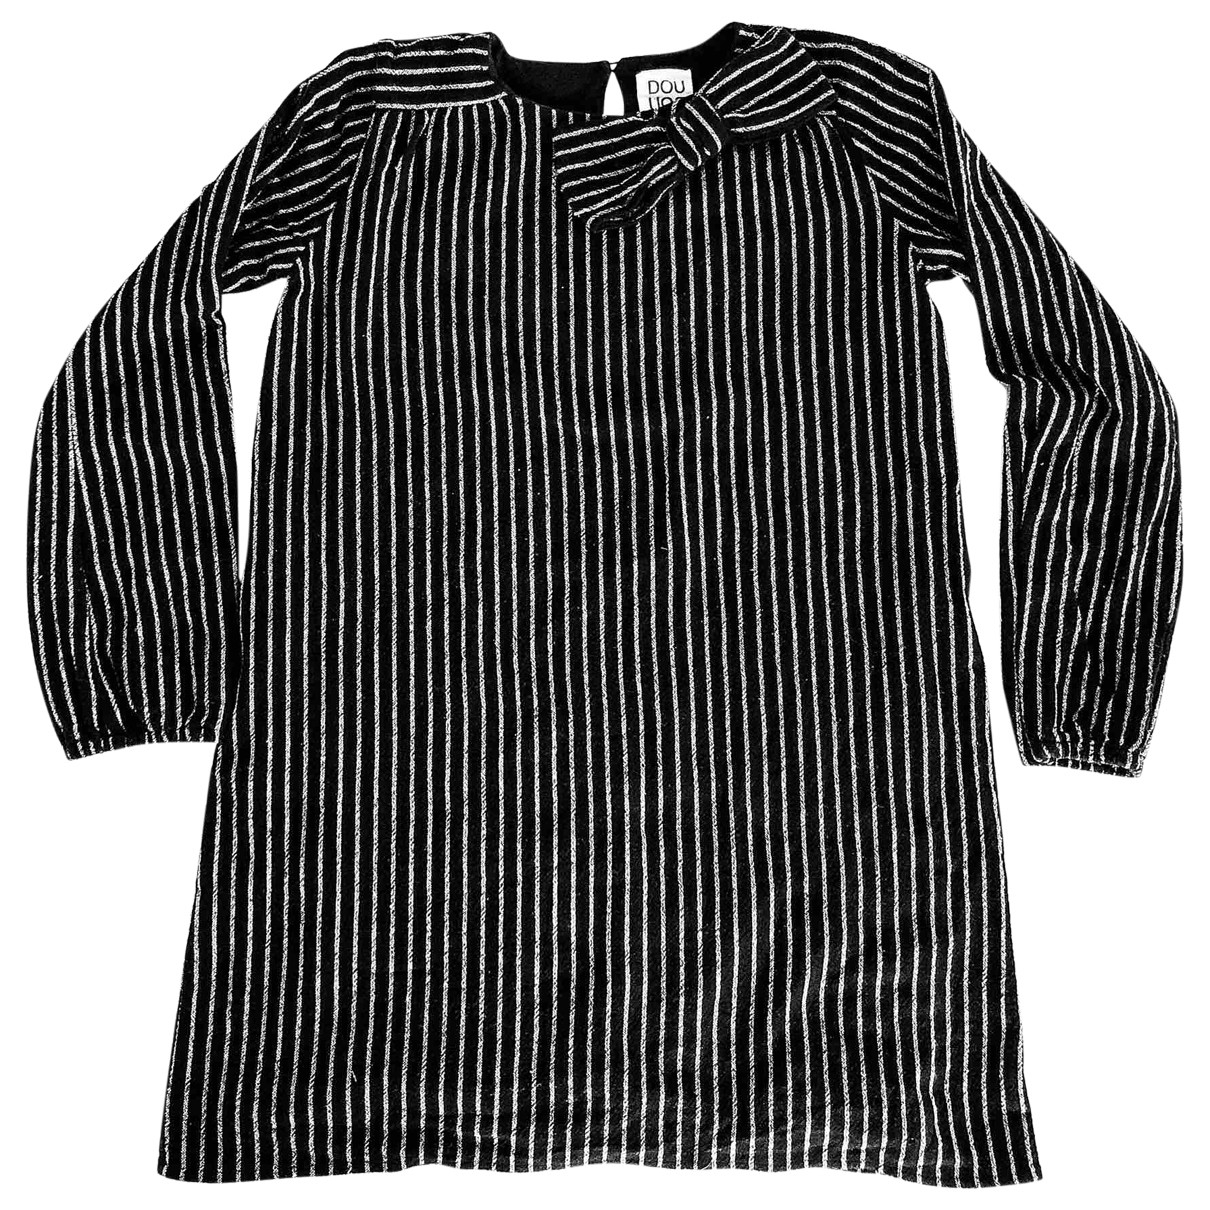 Douuod \N Black Cotton dress for Kids 12 years - XS FR